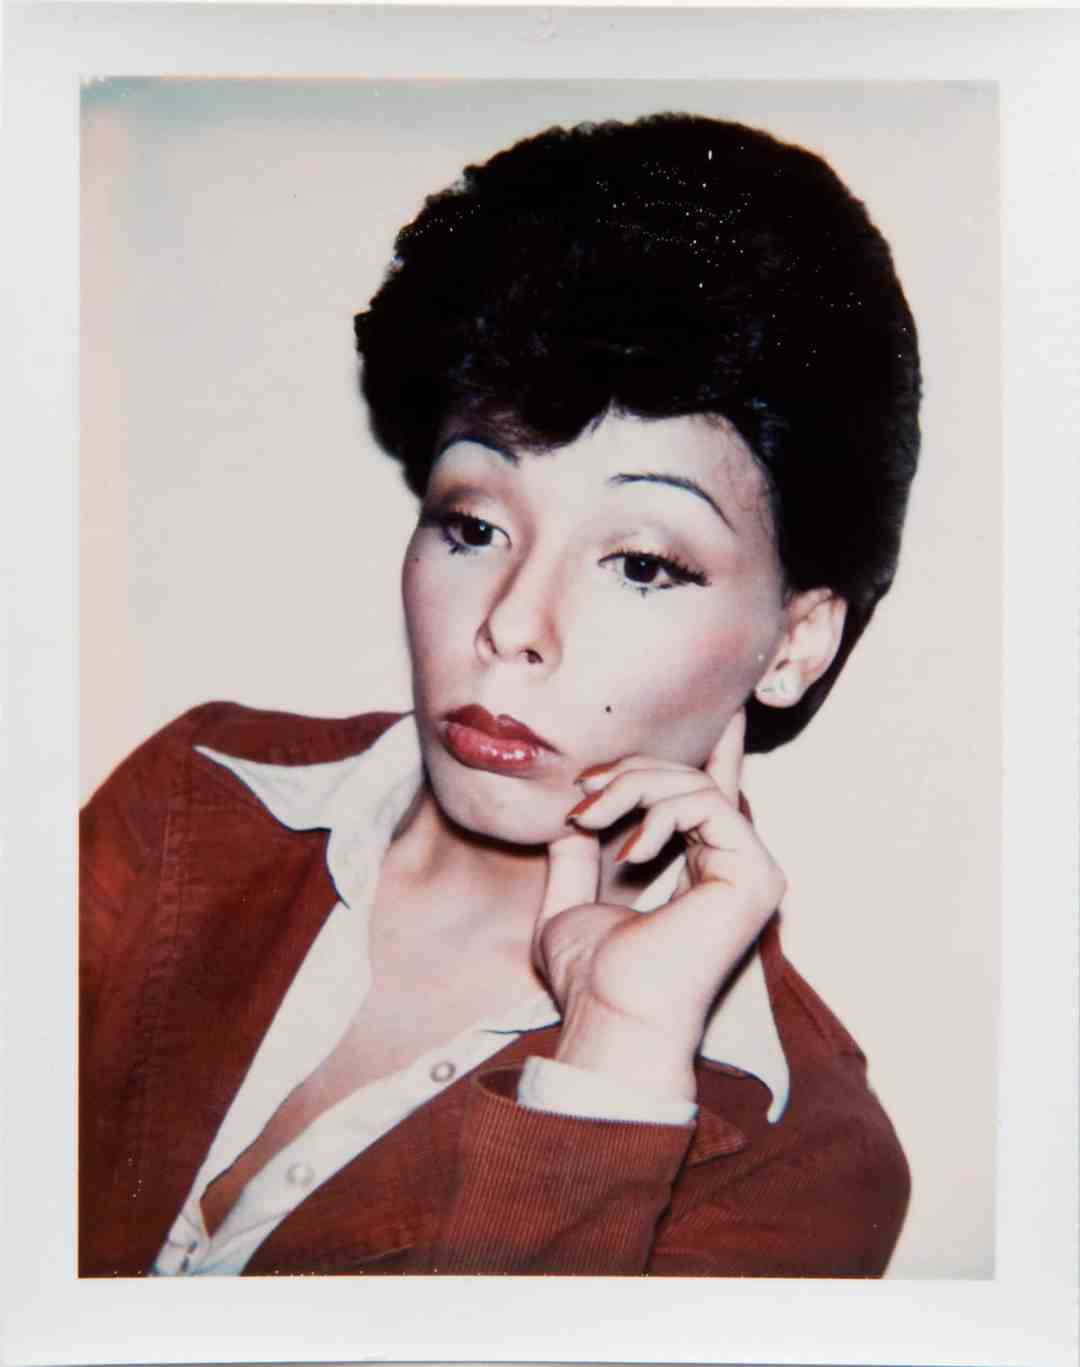 Andy Warhol (1928-1987), Ladies and Gentlemen (Kim),1974. Unique polaroid print © 2020 The Andy Warhol Foundation for the Visual Arts, Inc. / Licensed by Artists Rights Society (ARS), New York. Courtesy Hedges Projects.